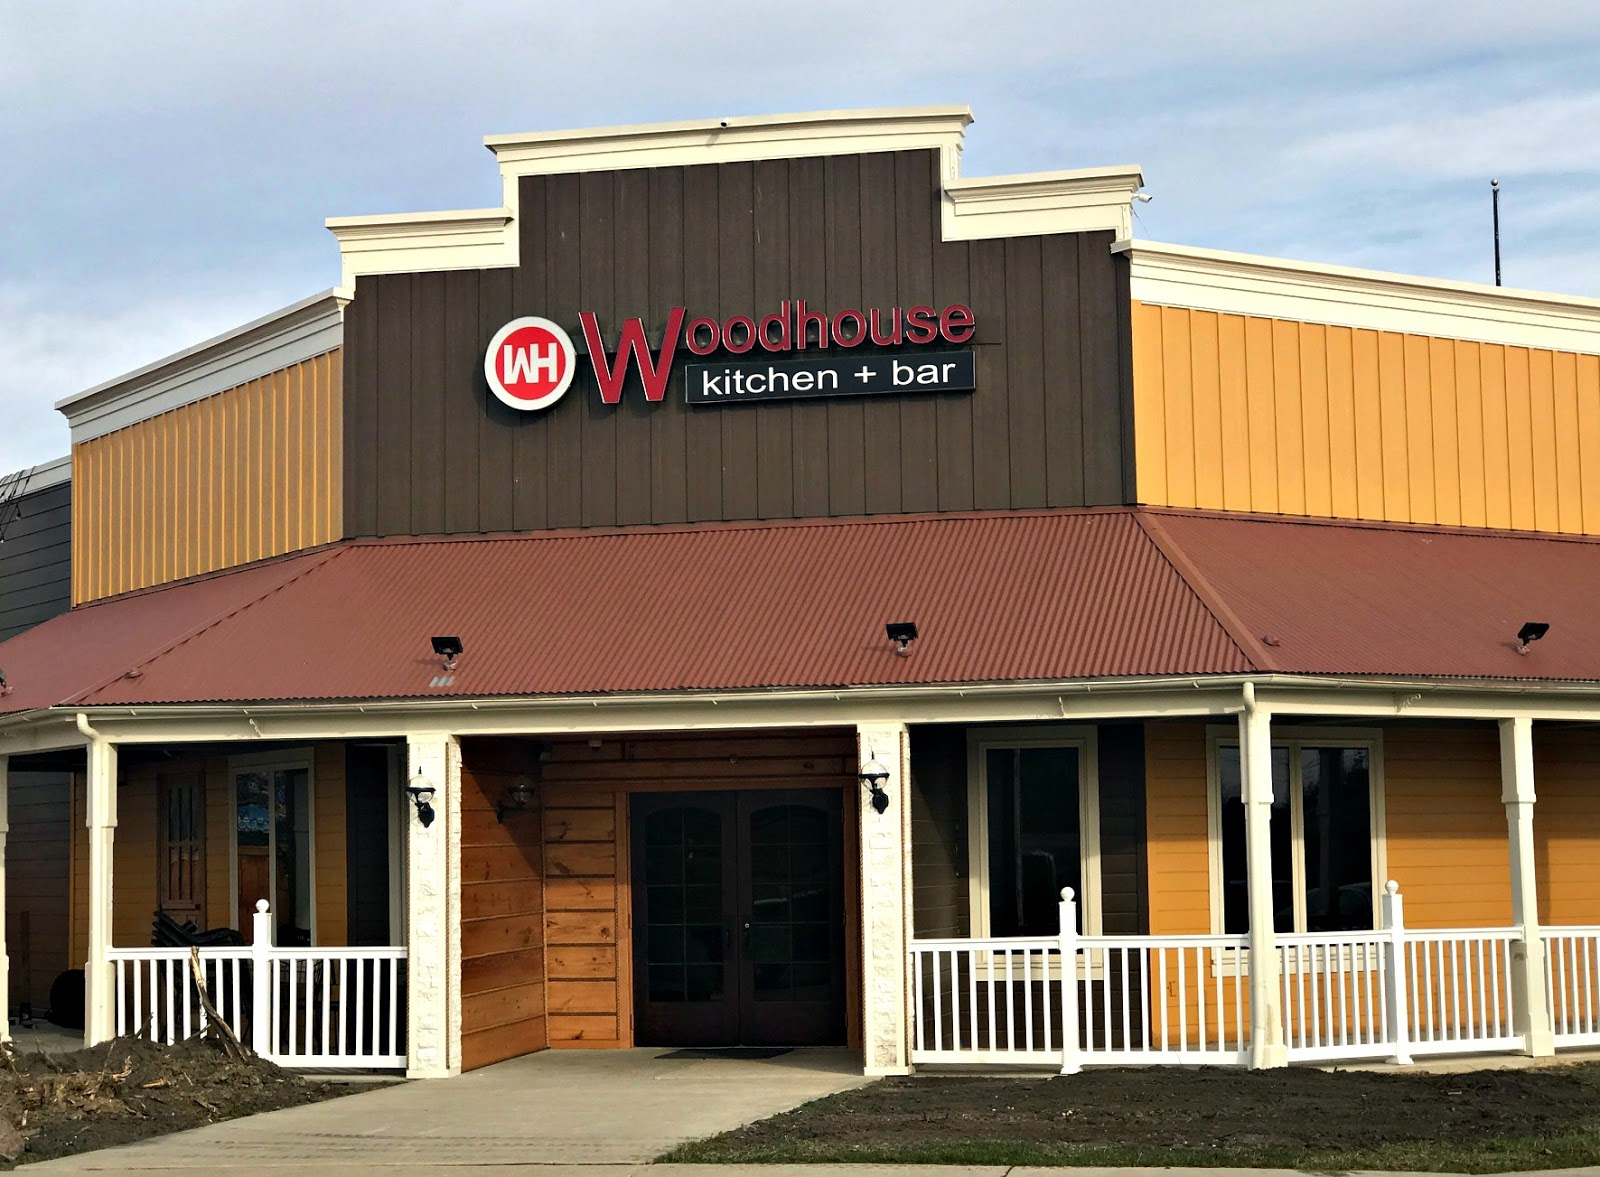 Restaurant Review: Woodhouse Kitchen + Bar, Mason | The Food Hussy!